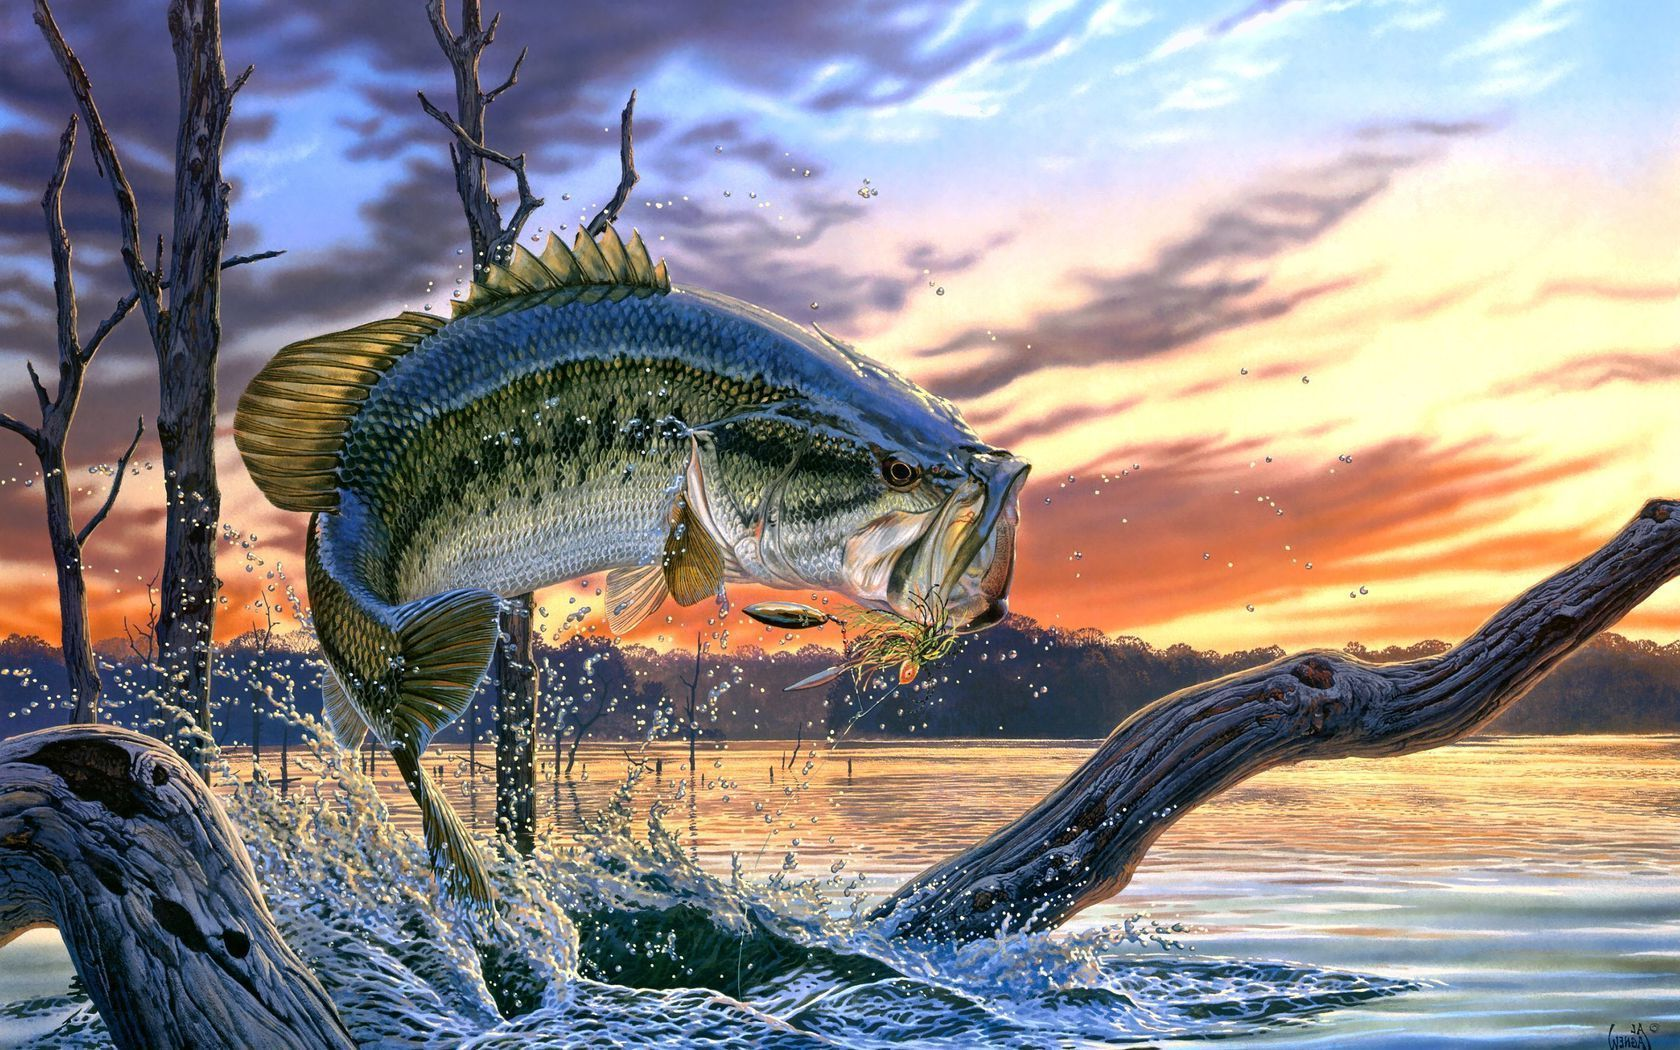 Bass Fishing Bass Fishing Wallpaper Backgrounds Wallpaper Cave Largemouth Bass Fishing Fish Wallpaper Fishing Pictures